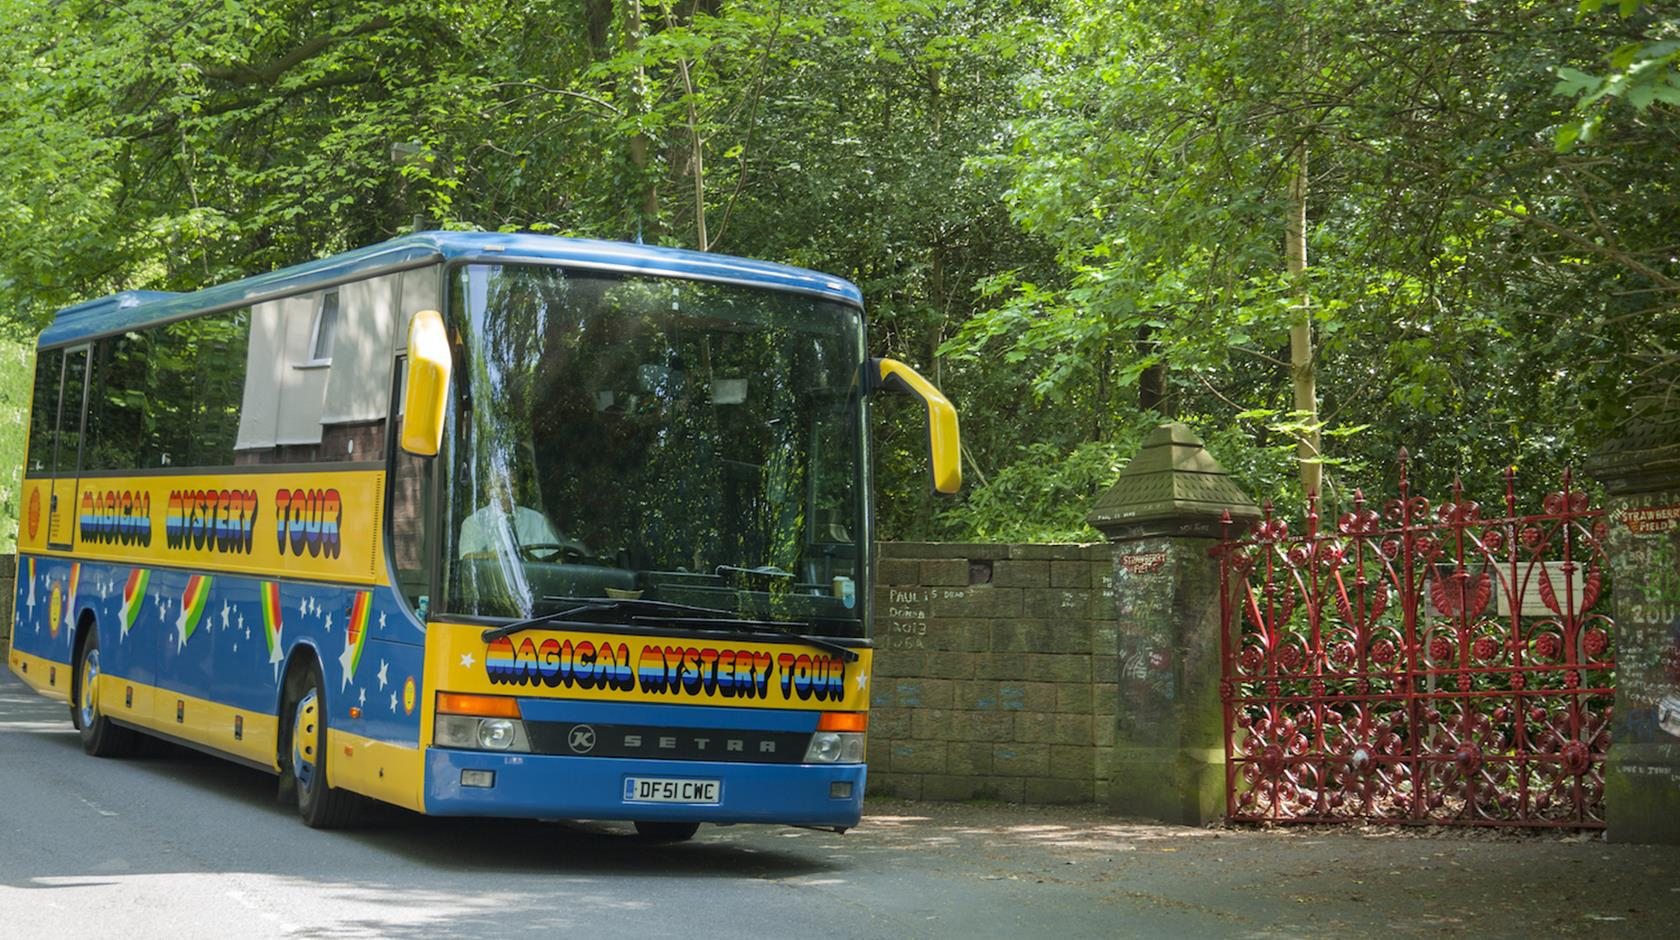 Take a Magical Mystery Tour, Liverpool - things to do in England.jpg